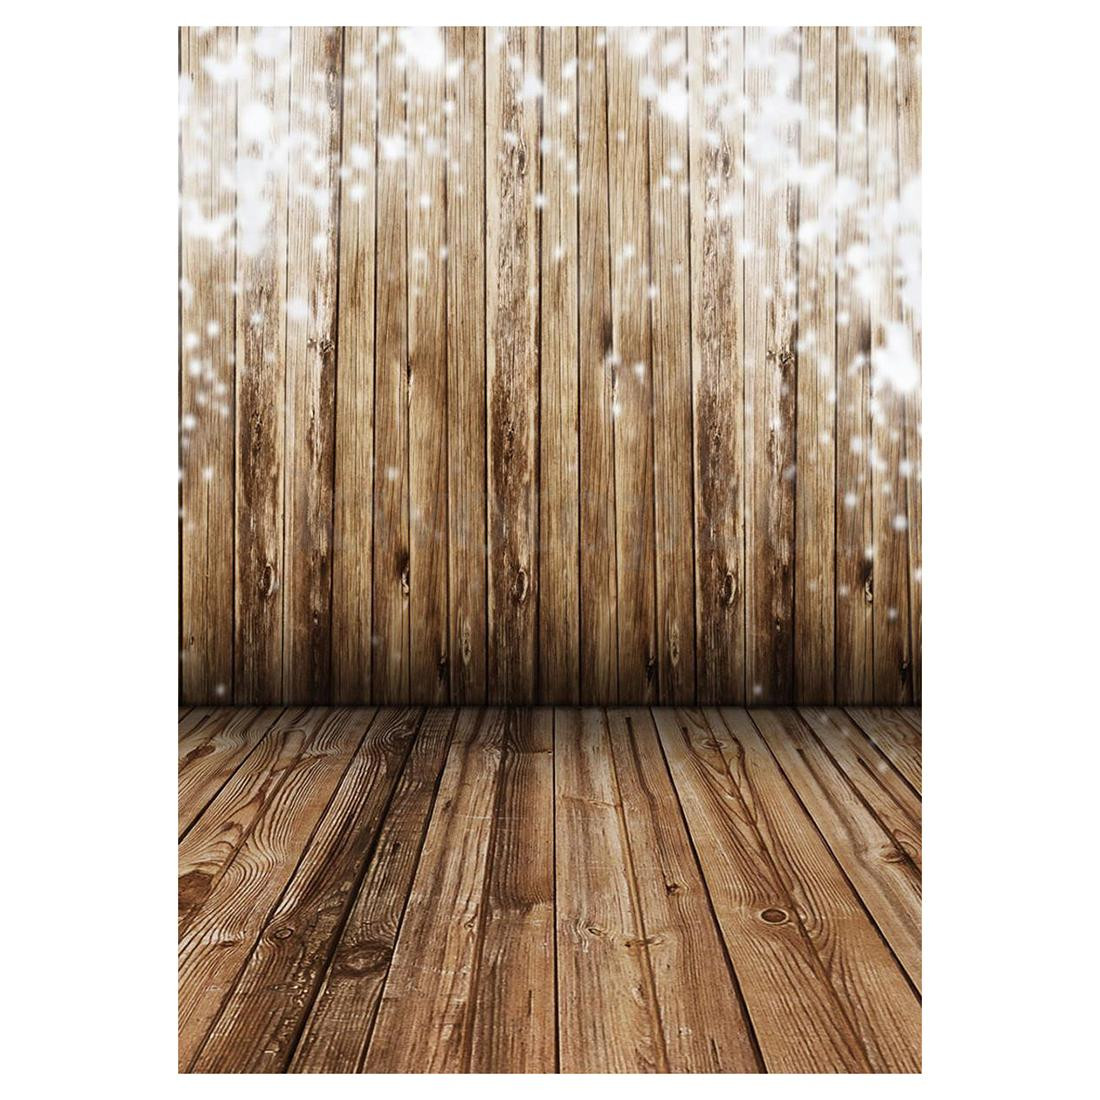 hardwood flooring business of 2018 3x5ft wood wall floor vinyl photography backdrop photo inside 2018 3x5ft wood wall floor vinyl photography backdrop photo background studio props from camerashome 33 53 dhgate com